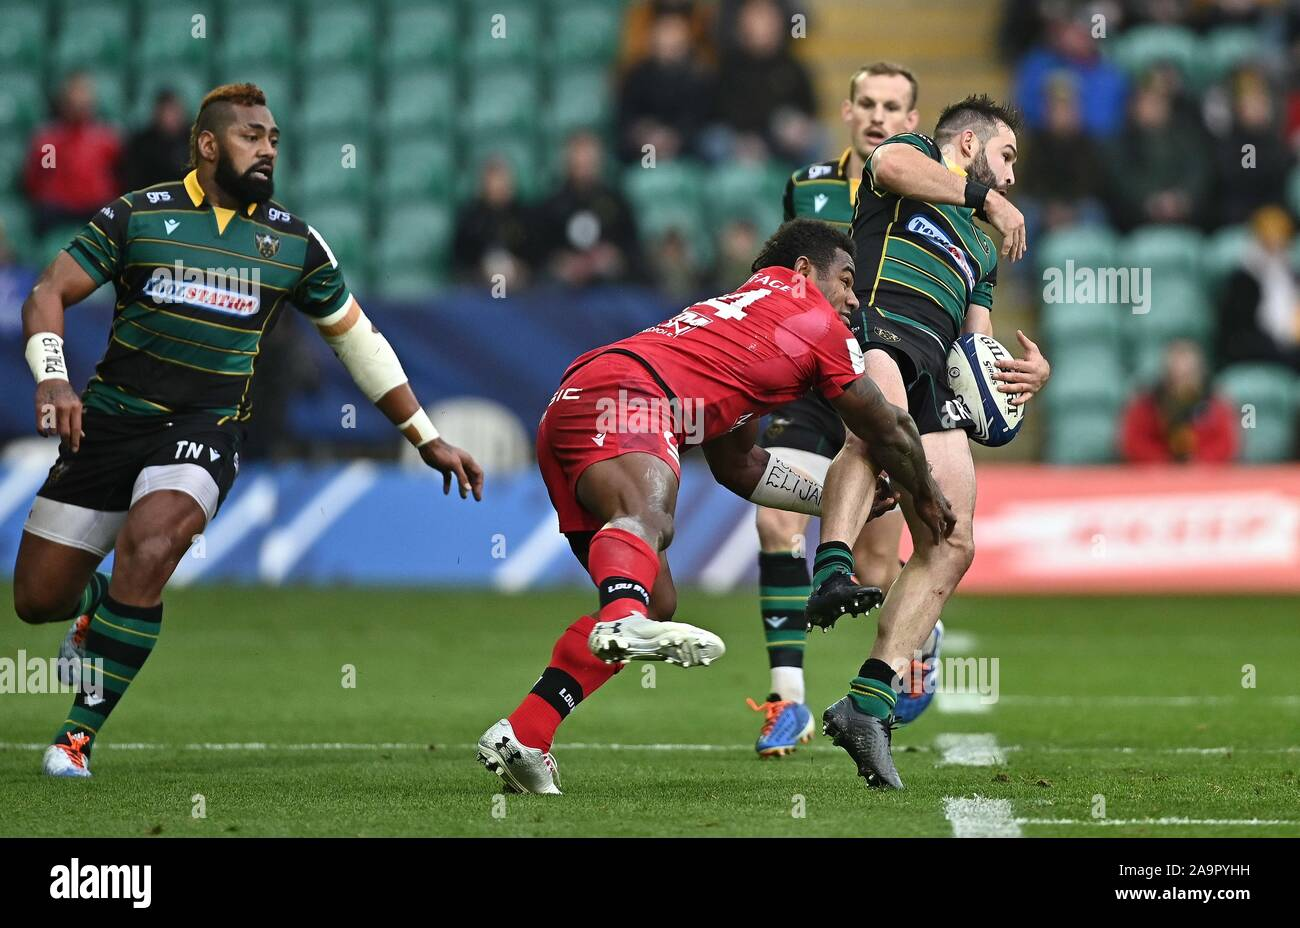 Northampton, UK. 17th Nov, 2019. Cobus Reinach (Northampton Saints) catches as he is tackled by Josua Tuisova (Lyon). Northampton Saints v Lyon. Heineken Champions Cup. Franklins Gardens. Northampton. Northamptonshire. UK. Credit Garry Bowden/Sport in Pictures. Credit: Sport In Pictures/Alamy Live News Stock Photo